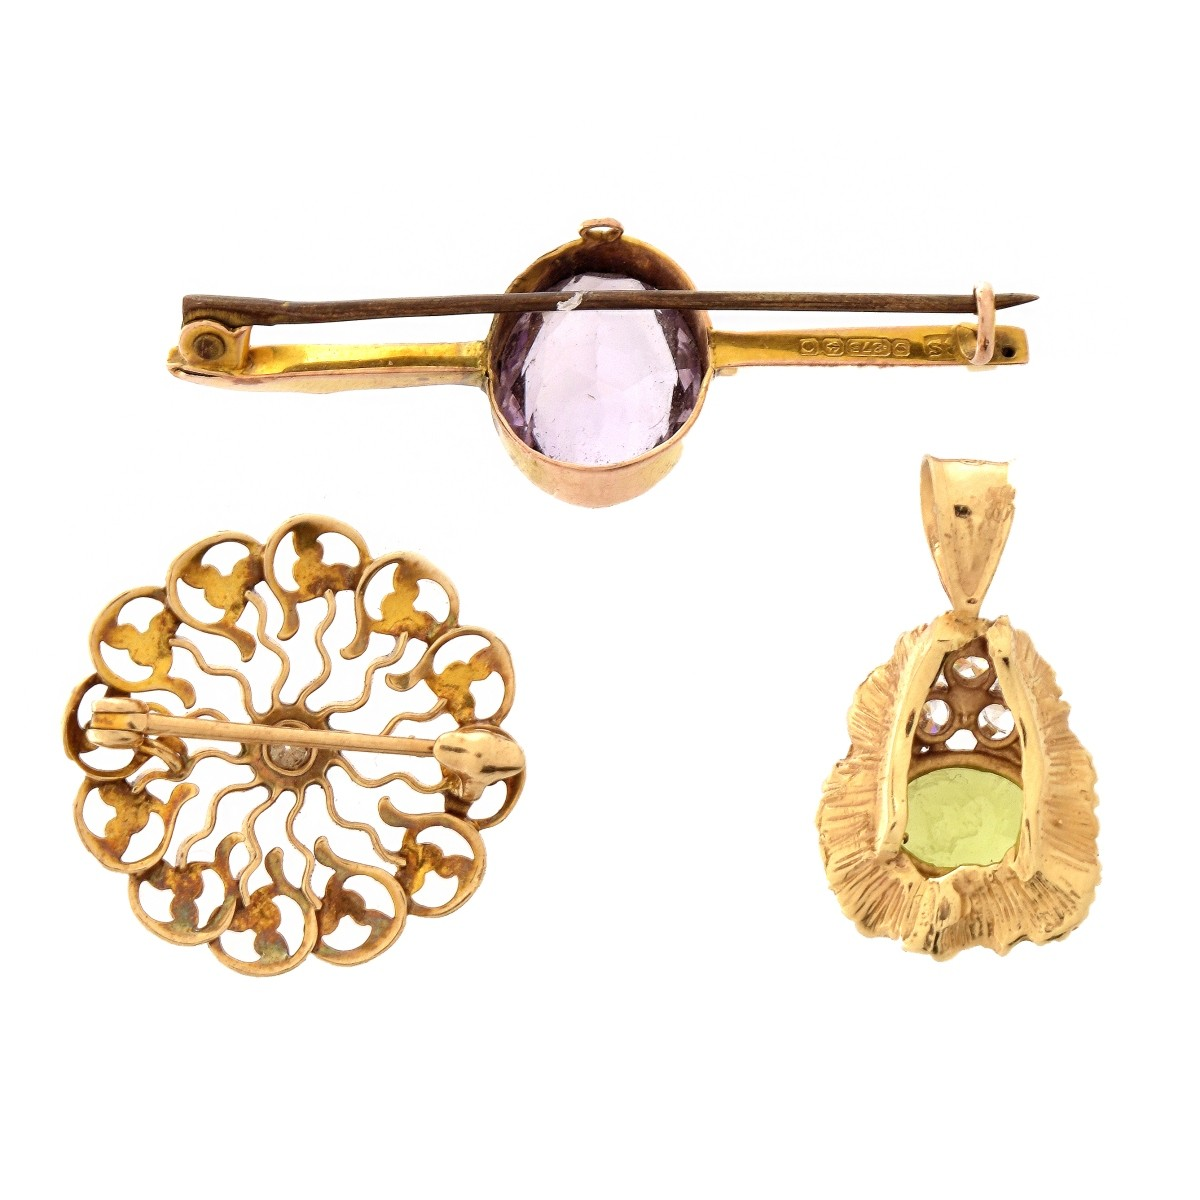 Two Gold and Gemstone Pins, One Pendant